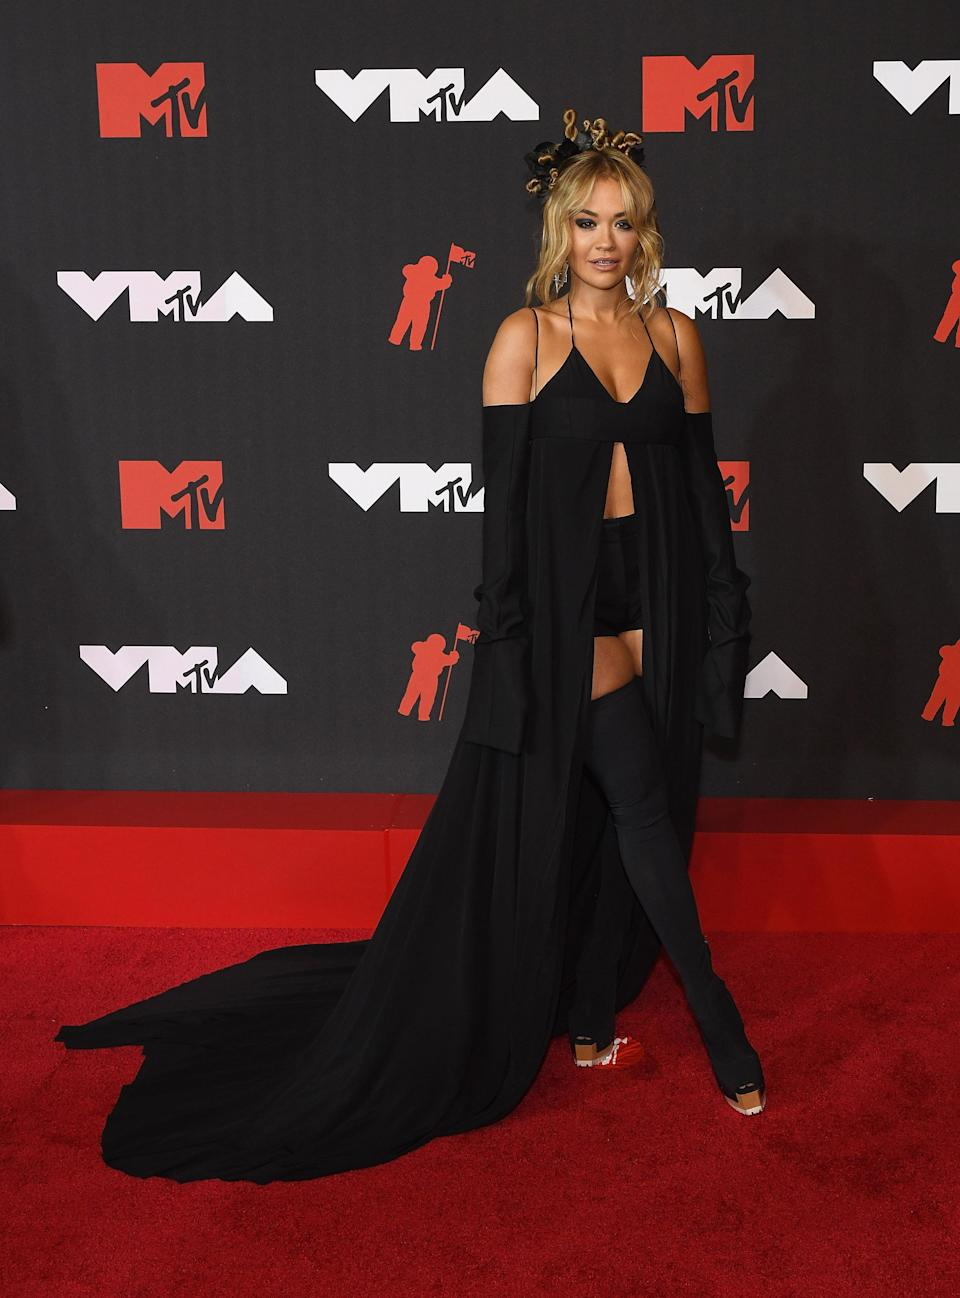 Rita Ora attends the 2021 MTV VMA's at Barclays Center in Brooklyn, New York. - Credit: Jeremy Smith/imageSPACE / MEGA